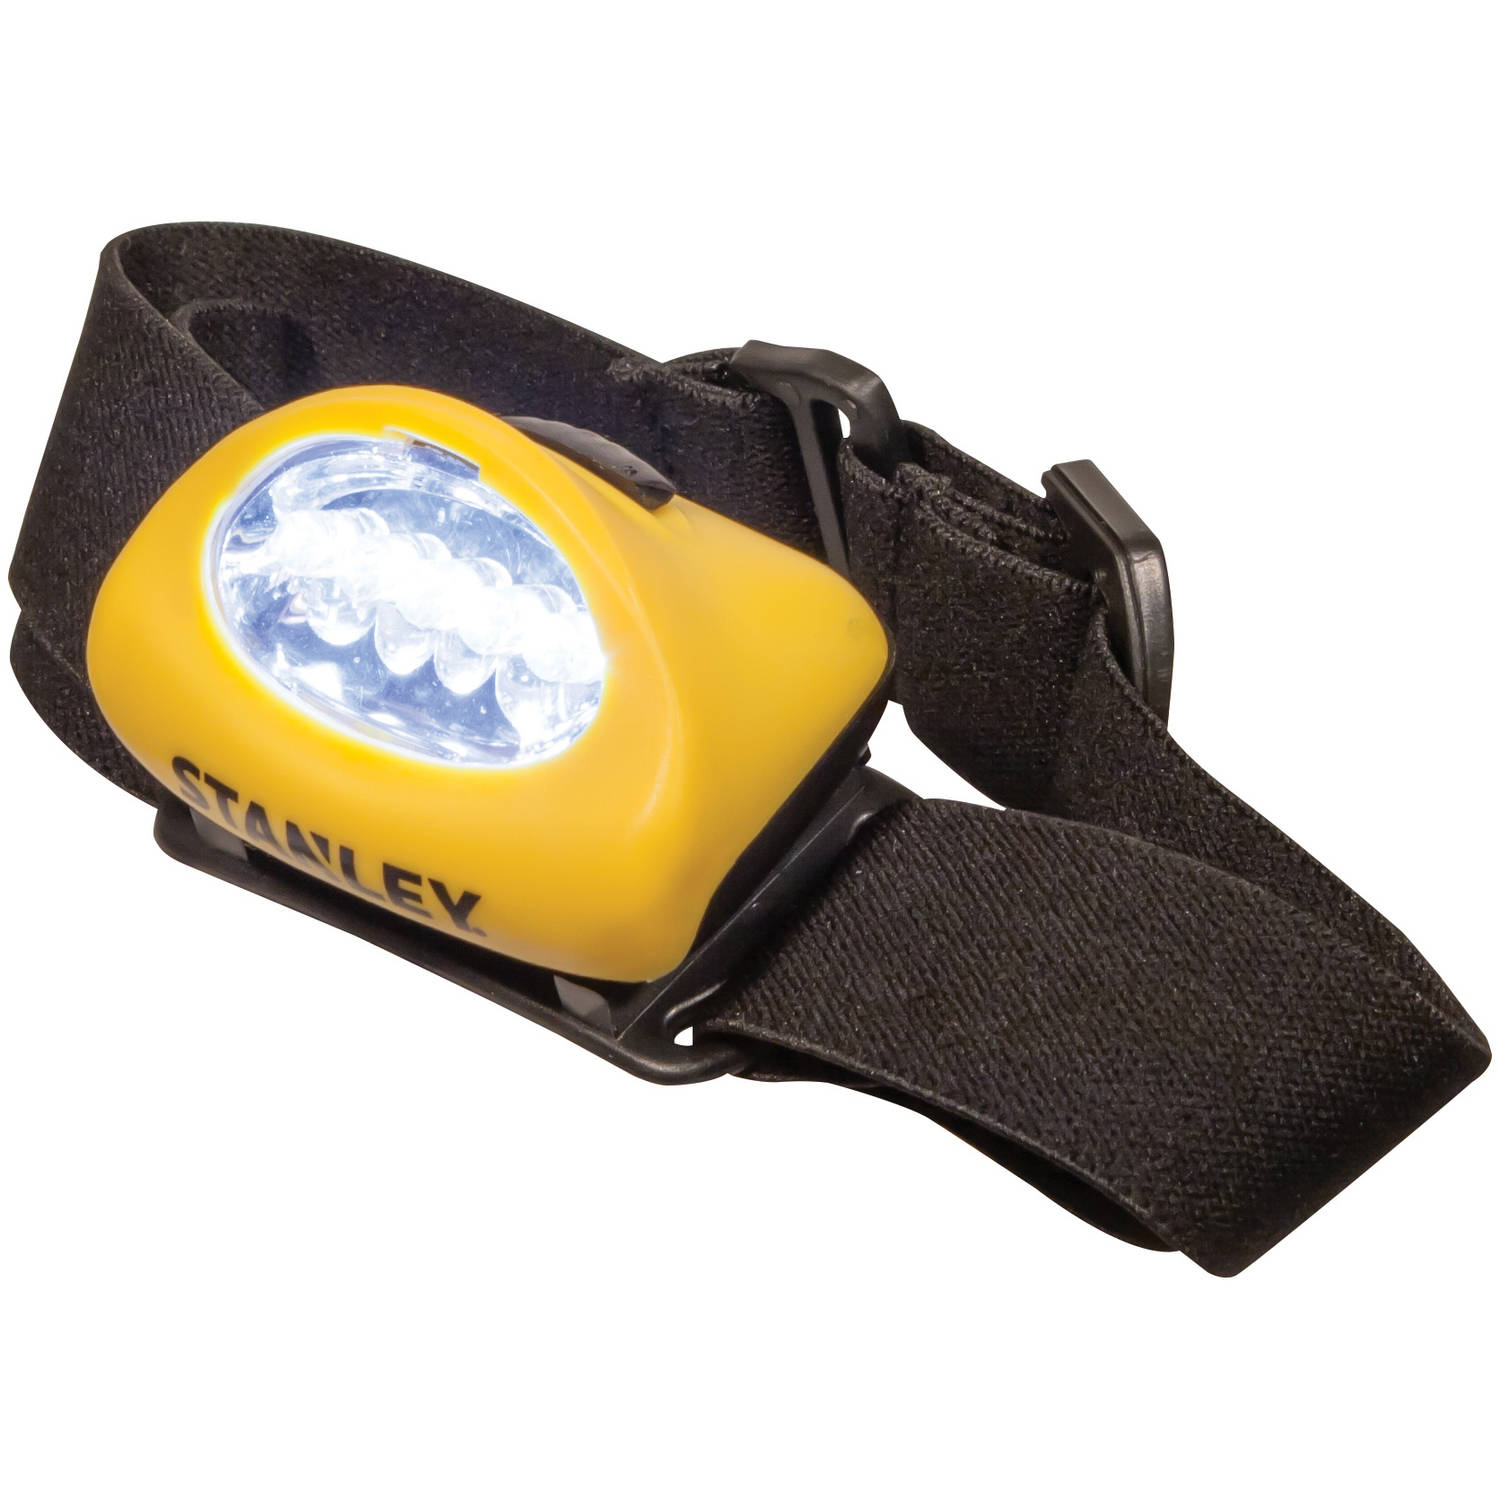 Twin Pack 5-LED Alkaline Headlamp